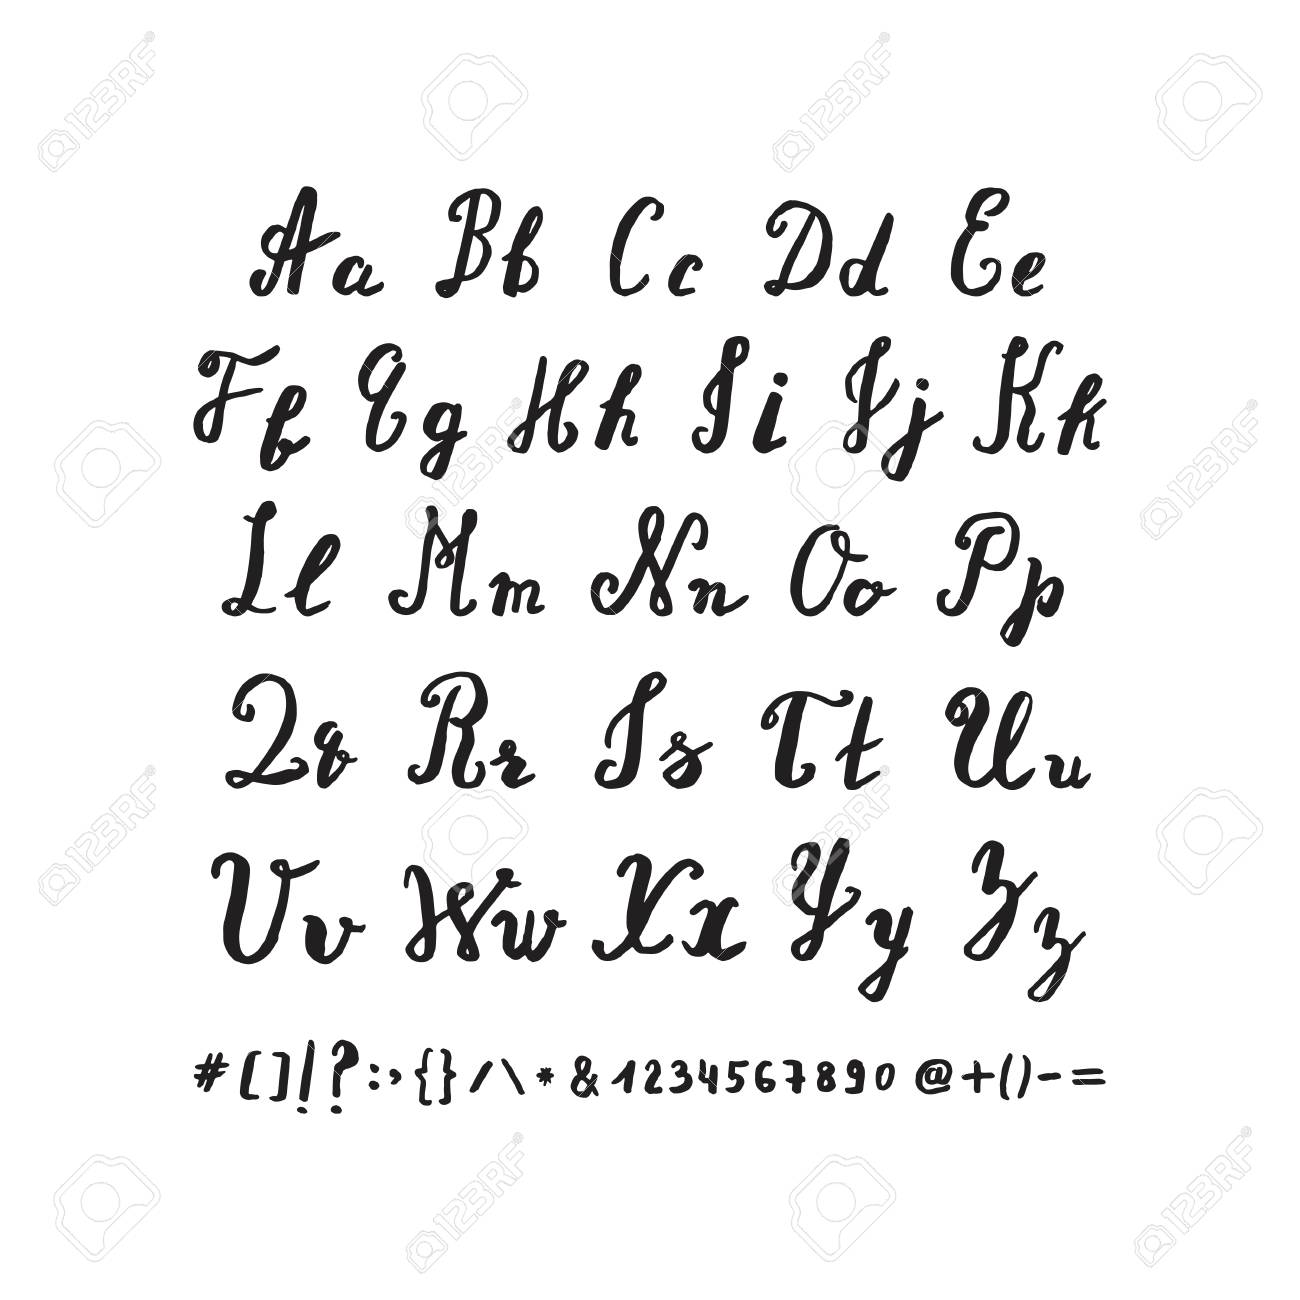 Hand Drawn Alphabet Vector Letters By Brush Pen Isolated On A White Background